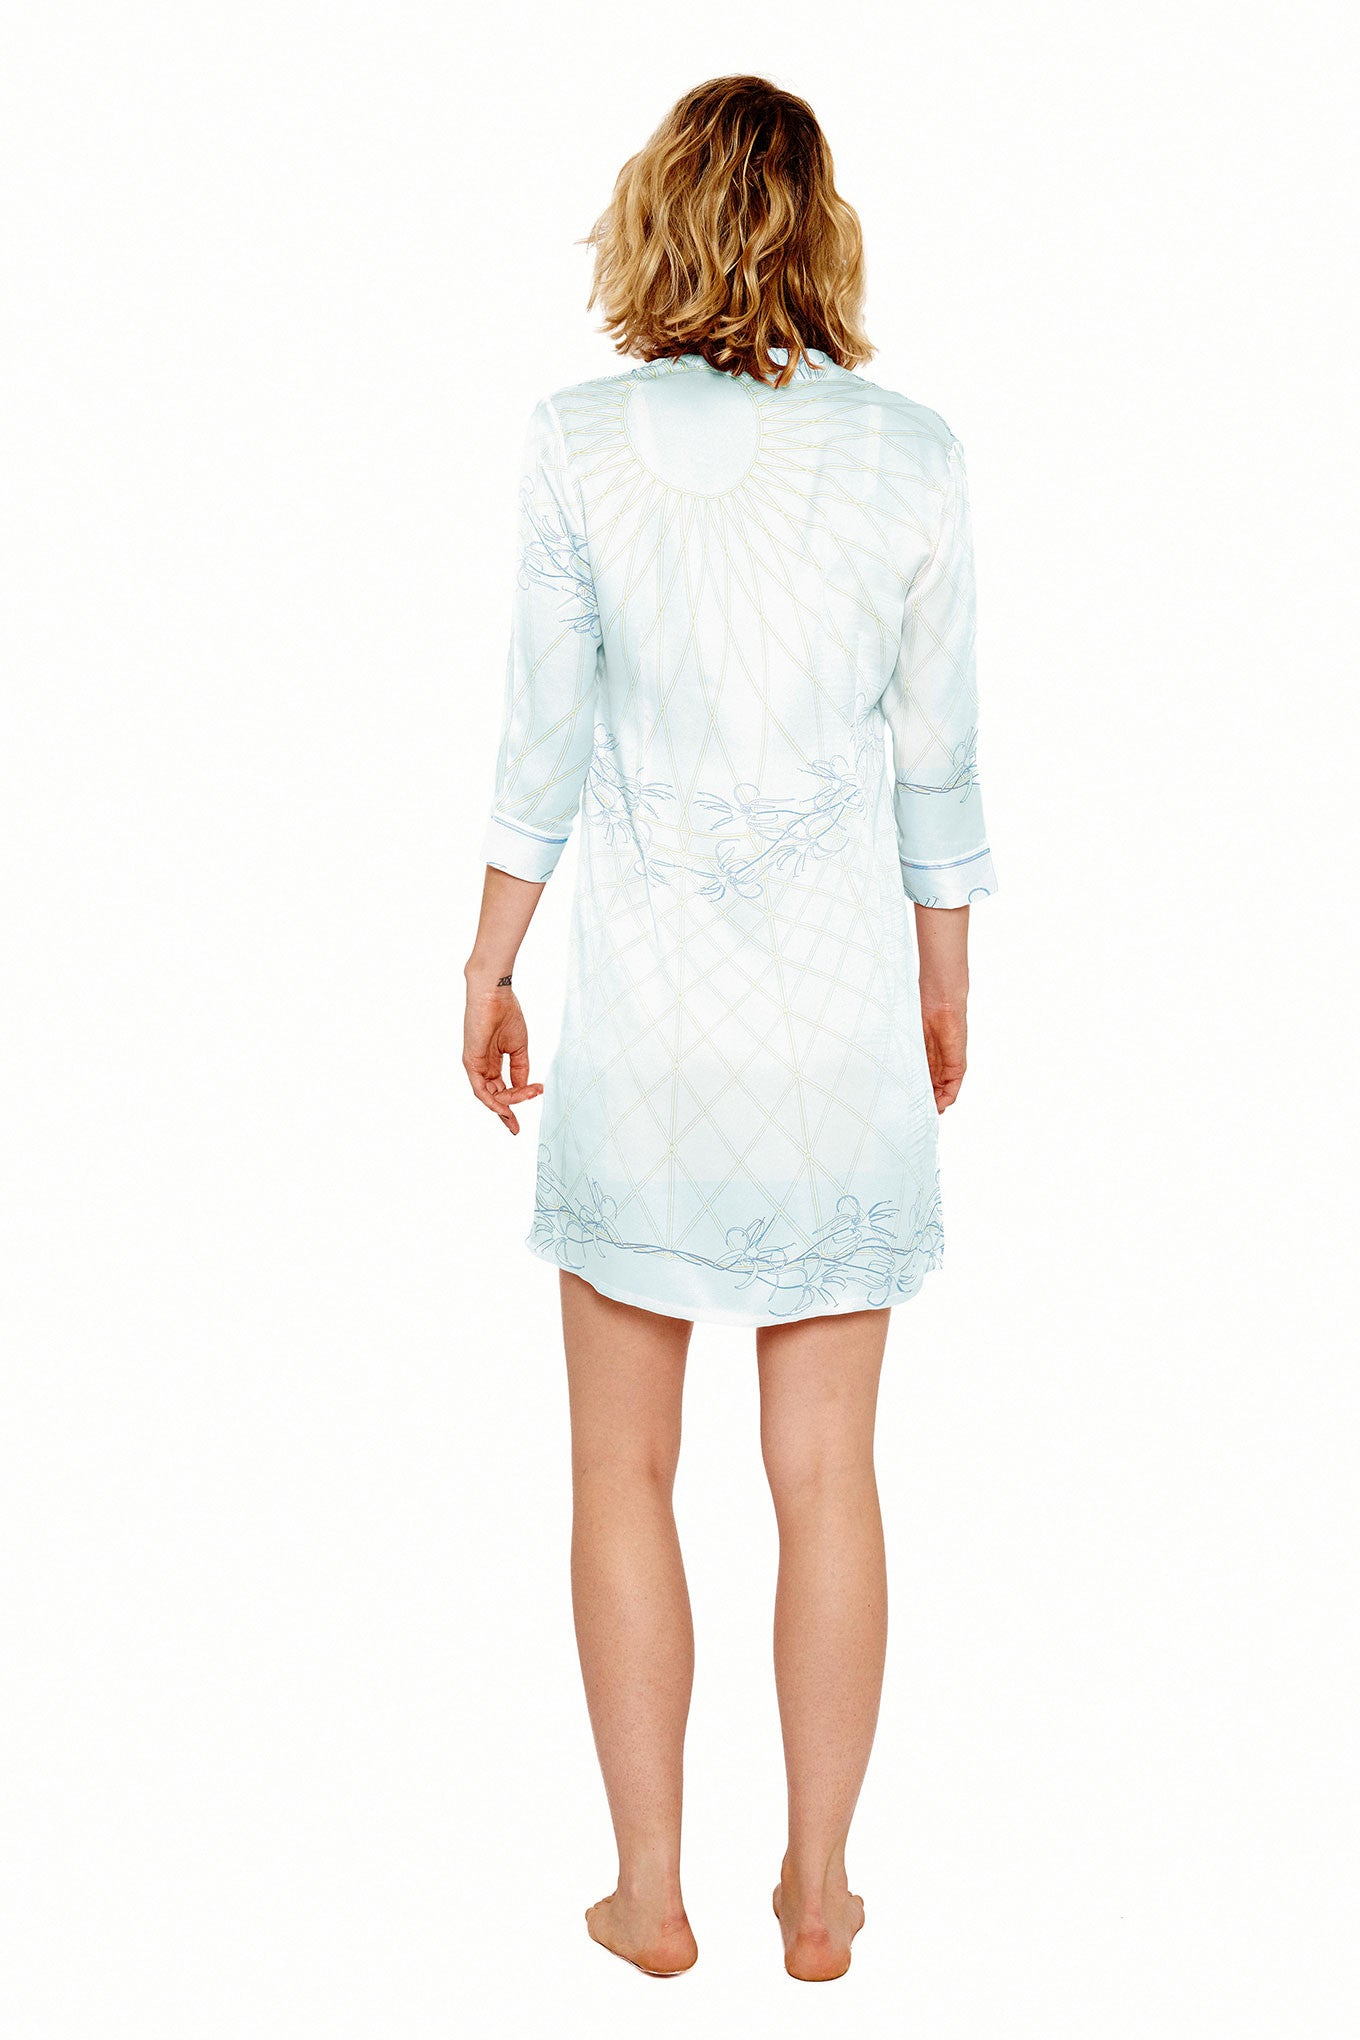 Lotty B Shirt Dress in Silk Crepe-de-Chine (Spiderlily Pale Blue) Back